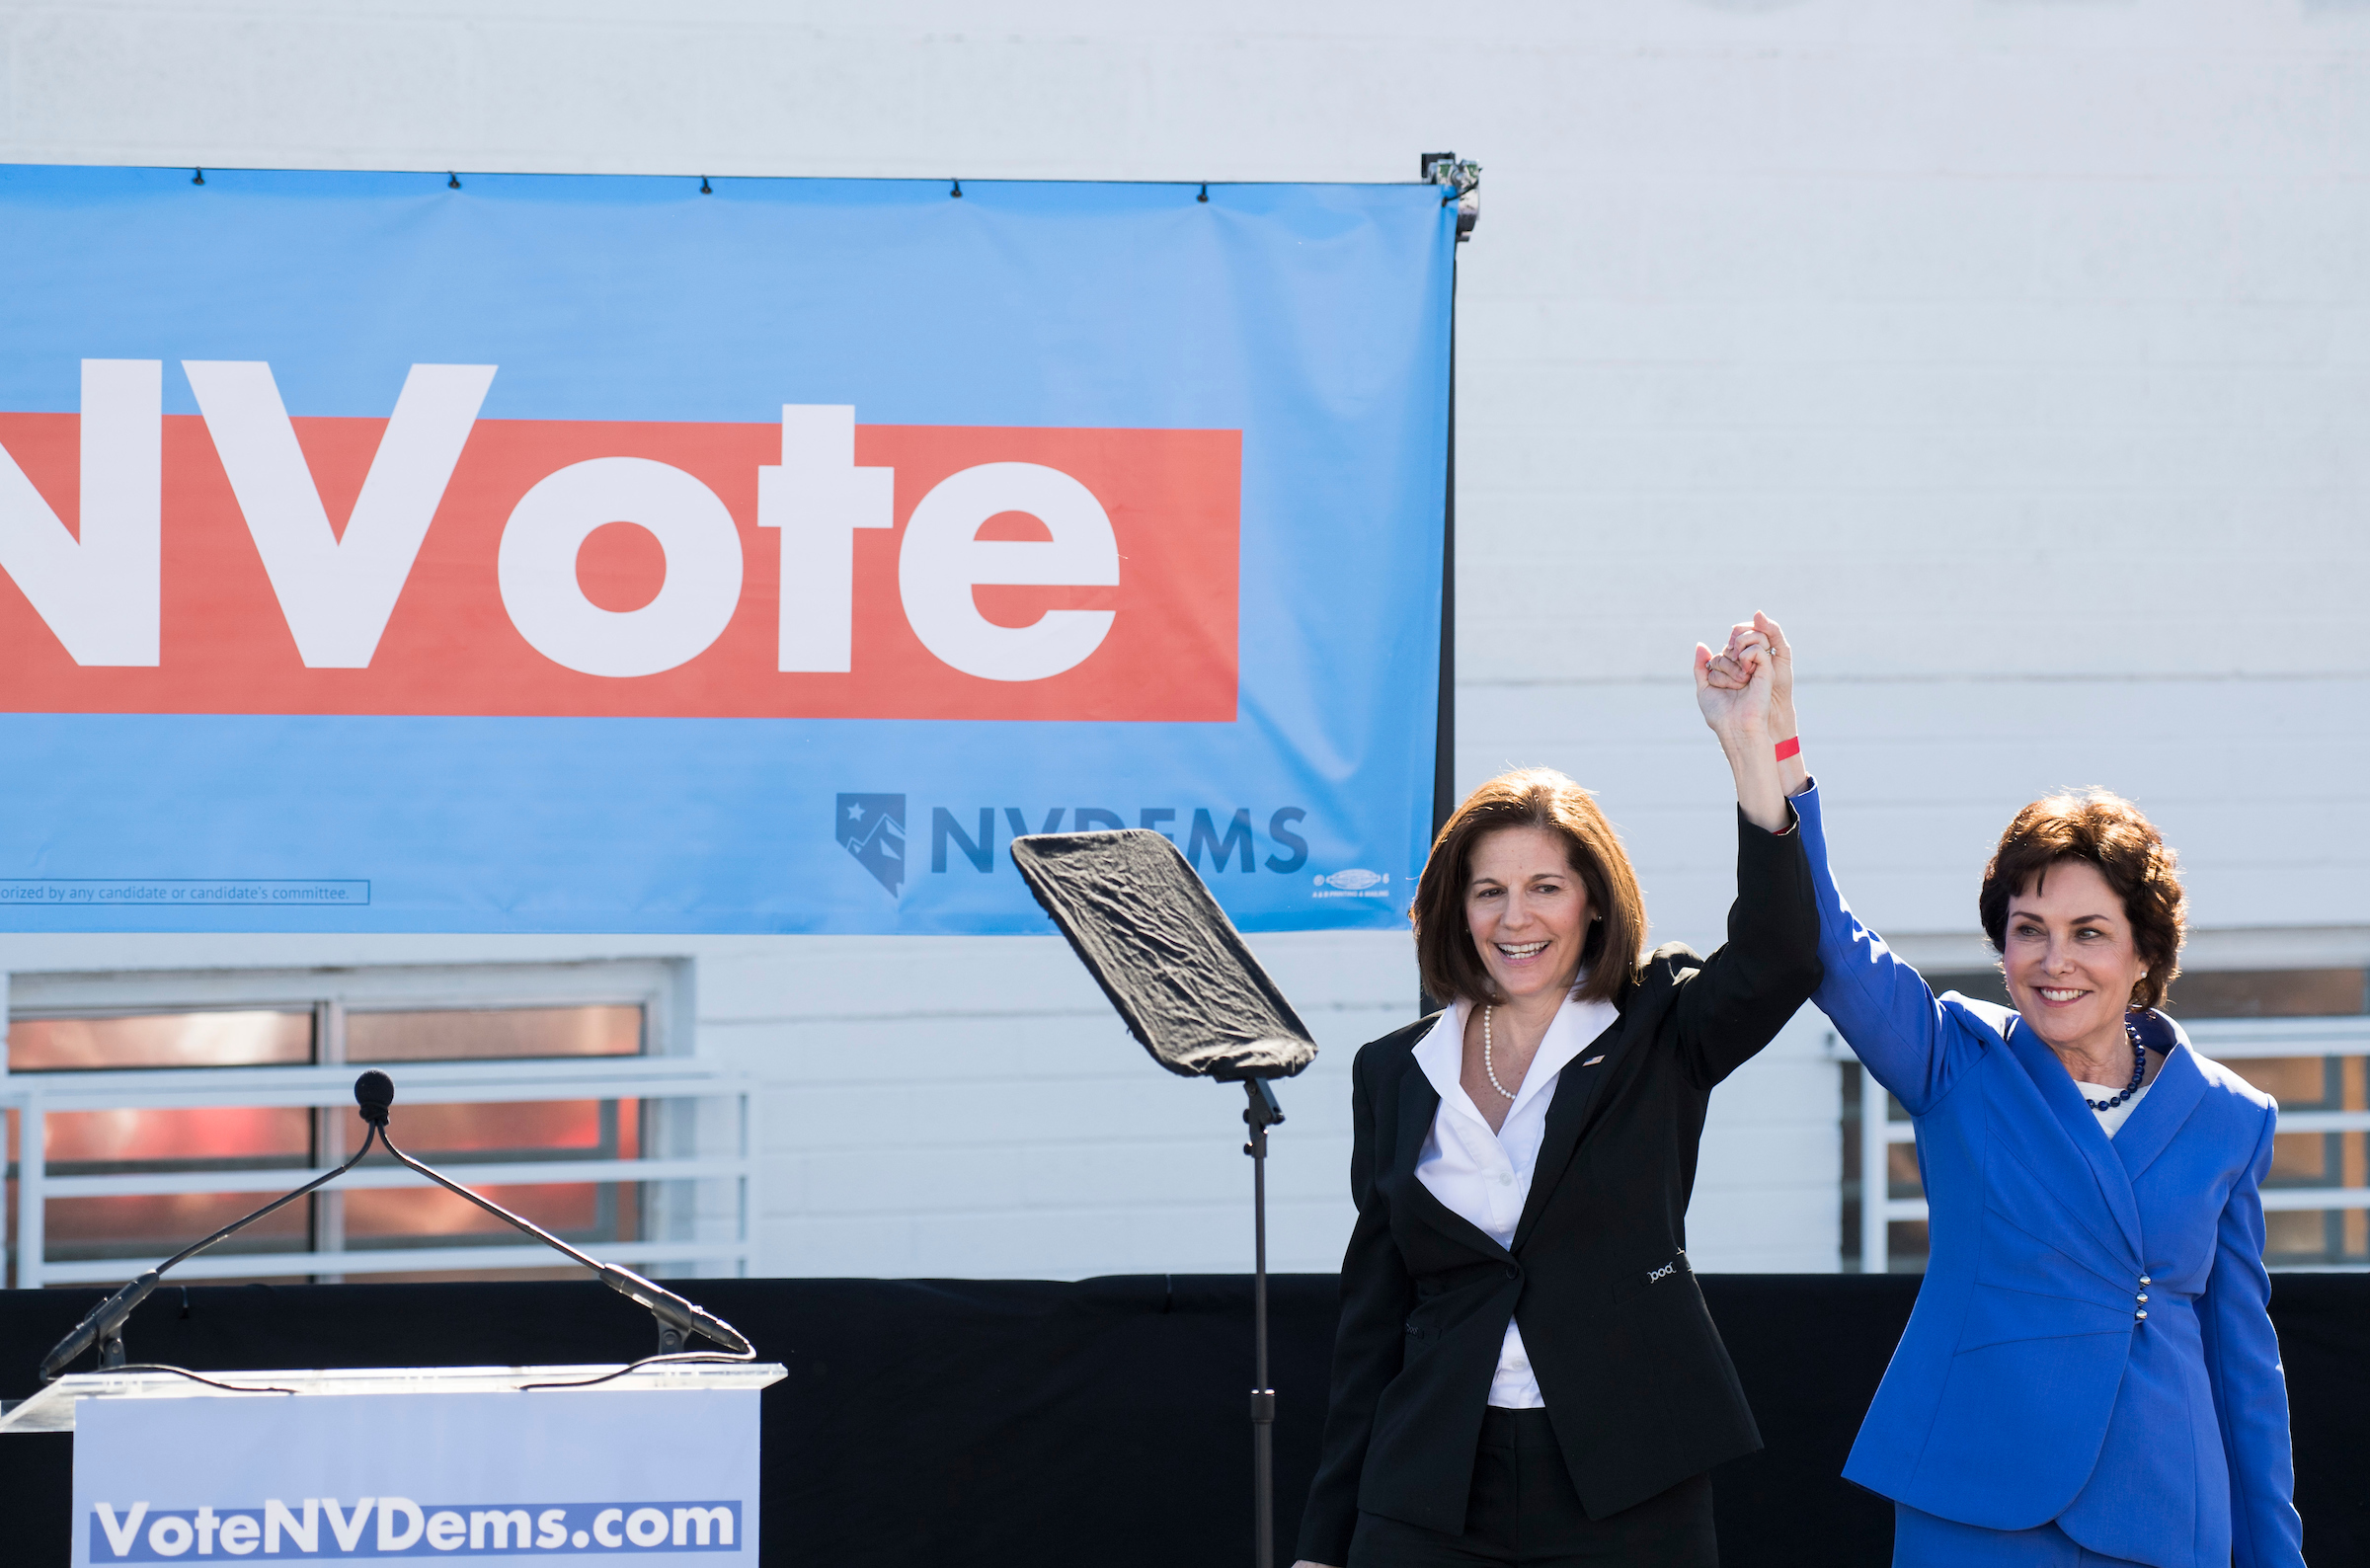 Sen. Catherine Cortez Masto, D-Nev., left, and Democratic candidate for Senate Rep. Jacky Rosen, D-Nev.,hold hands up in the air at the Nevada Democrats' early vote rally, which featured former Vice President Joe Biden, at the Culinary Workers Union Local 226 in Las Vegas on Saturday, Oct. 20, 2018, the first day of early voting in Nevada. (Photo By Bill Clark/CQ Roll Call)